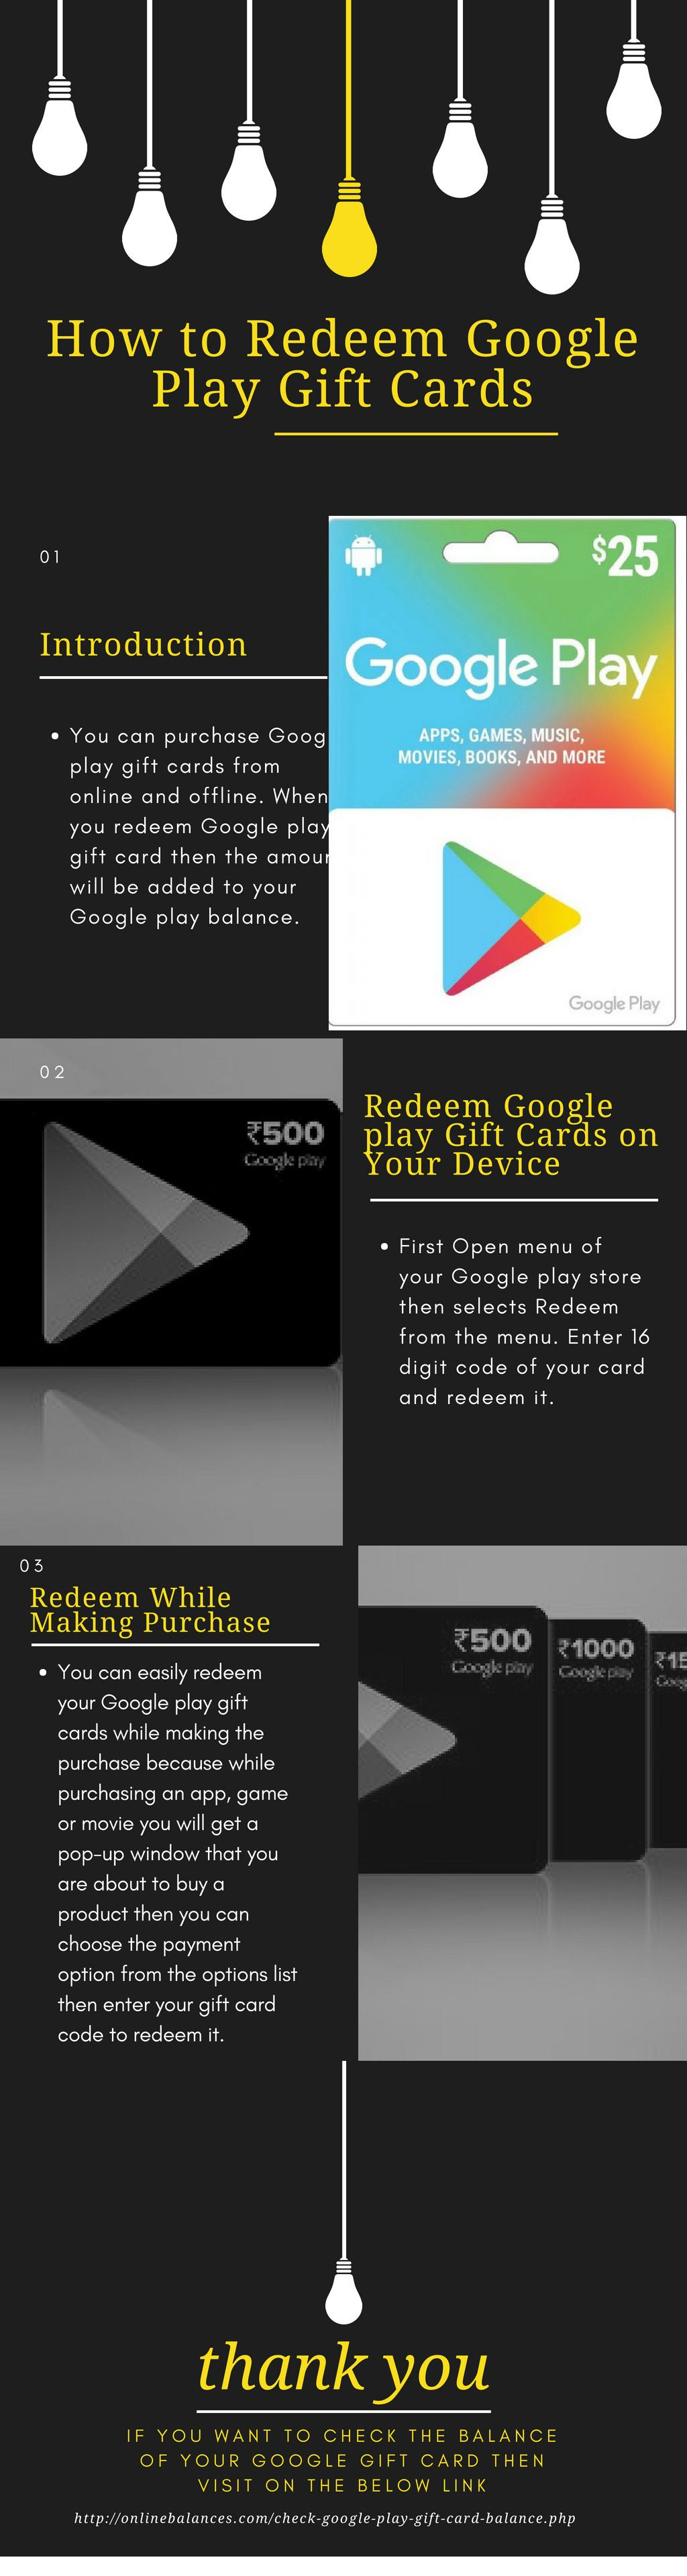 How to Redeem Google Play Gift Card Online Balance